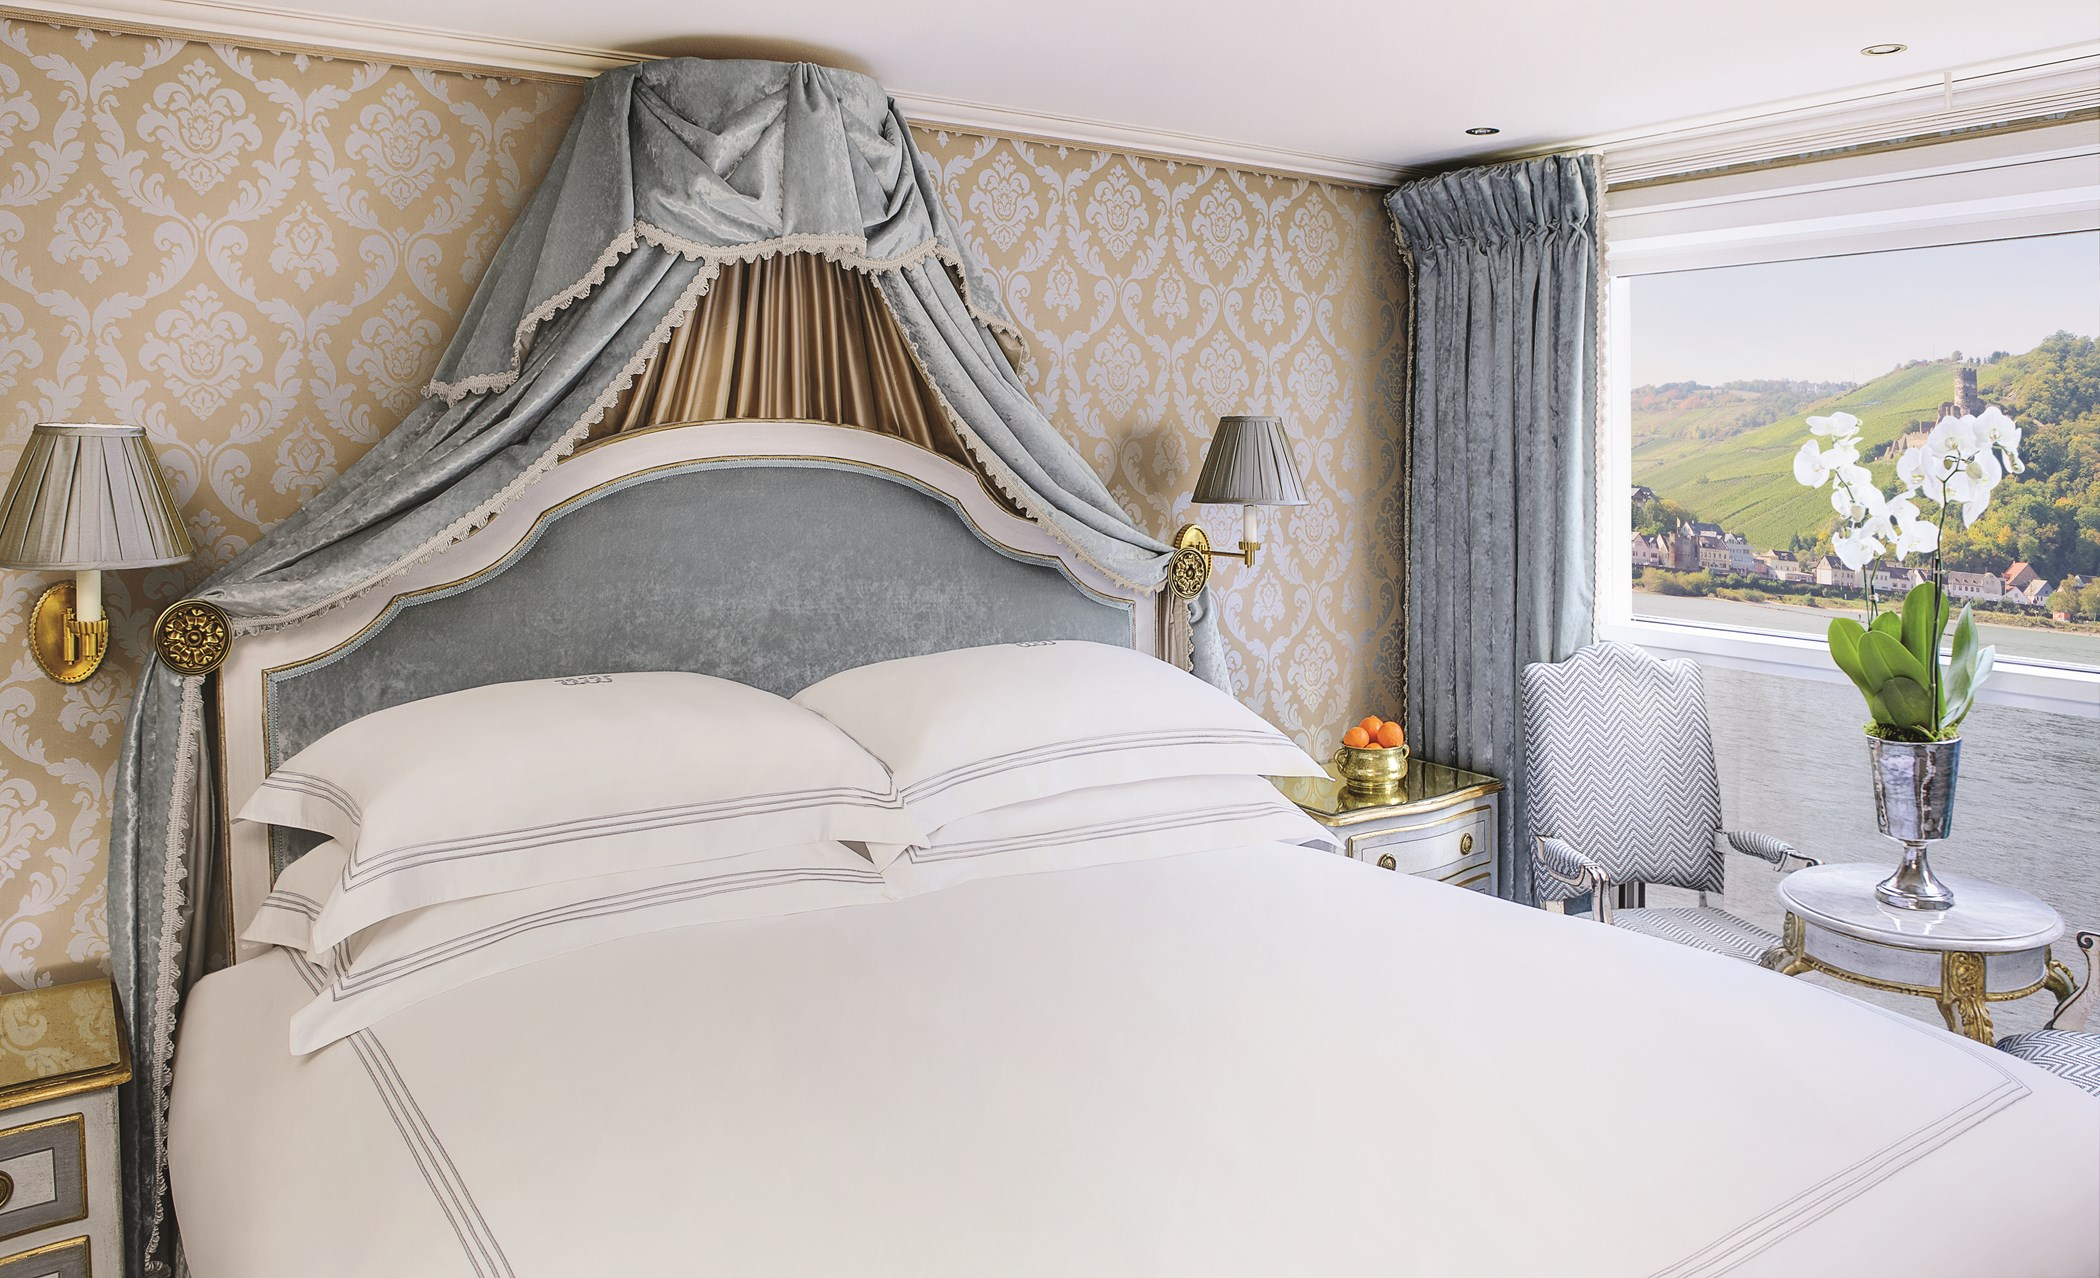 UNIWORLD Boutique River Cruises SS Maria Theresa Accommodation Stateroom Category 3 1.jpg